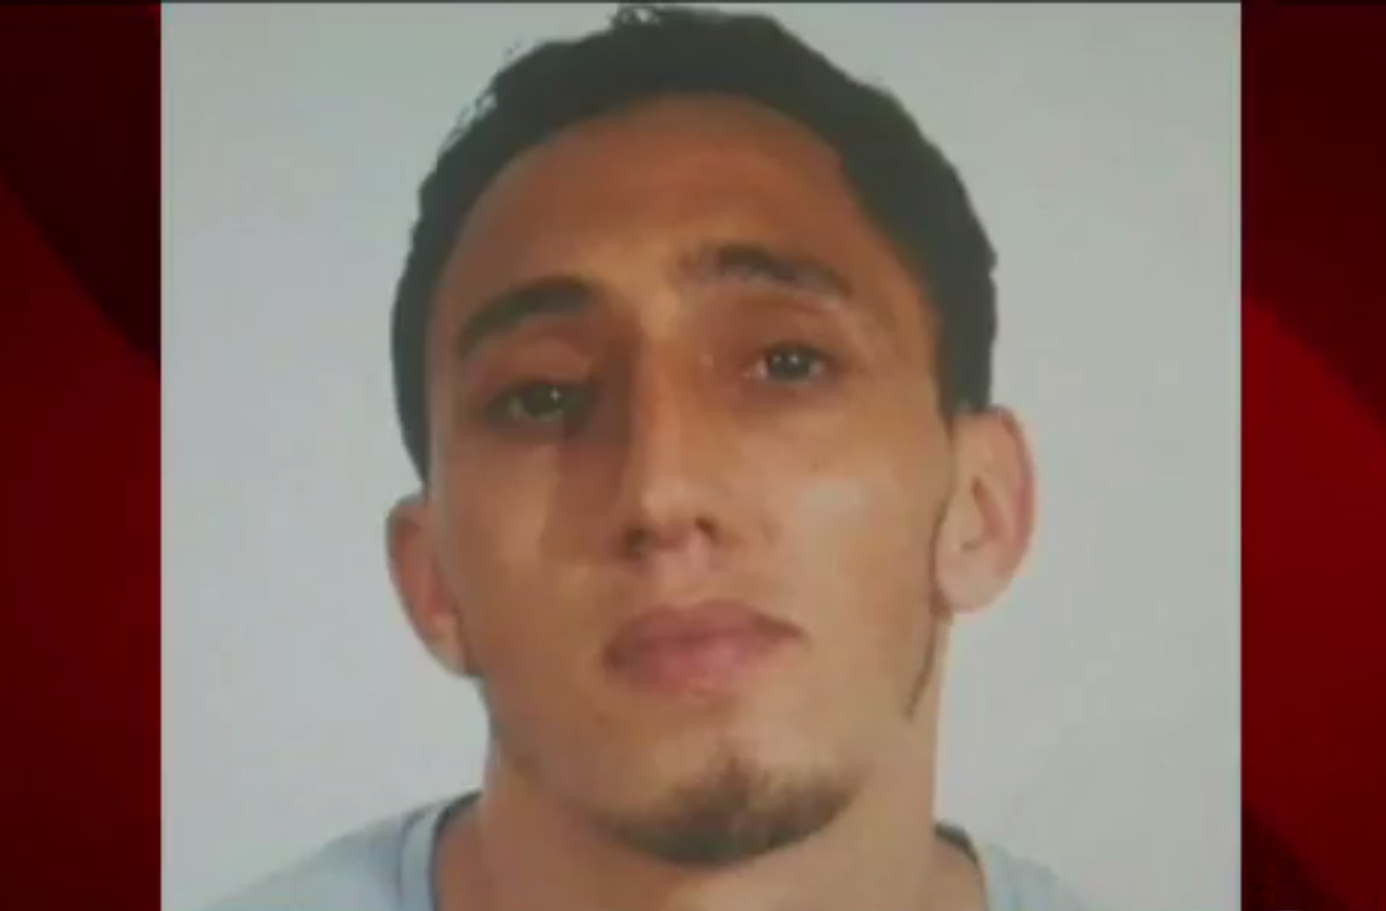 Spanish police release photo of man believed to be a suspect in Barcelona attack.